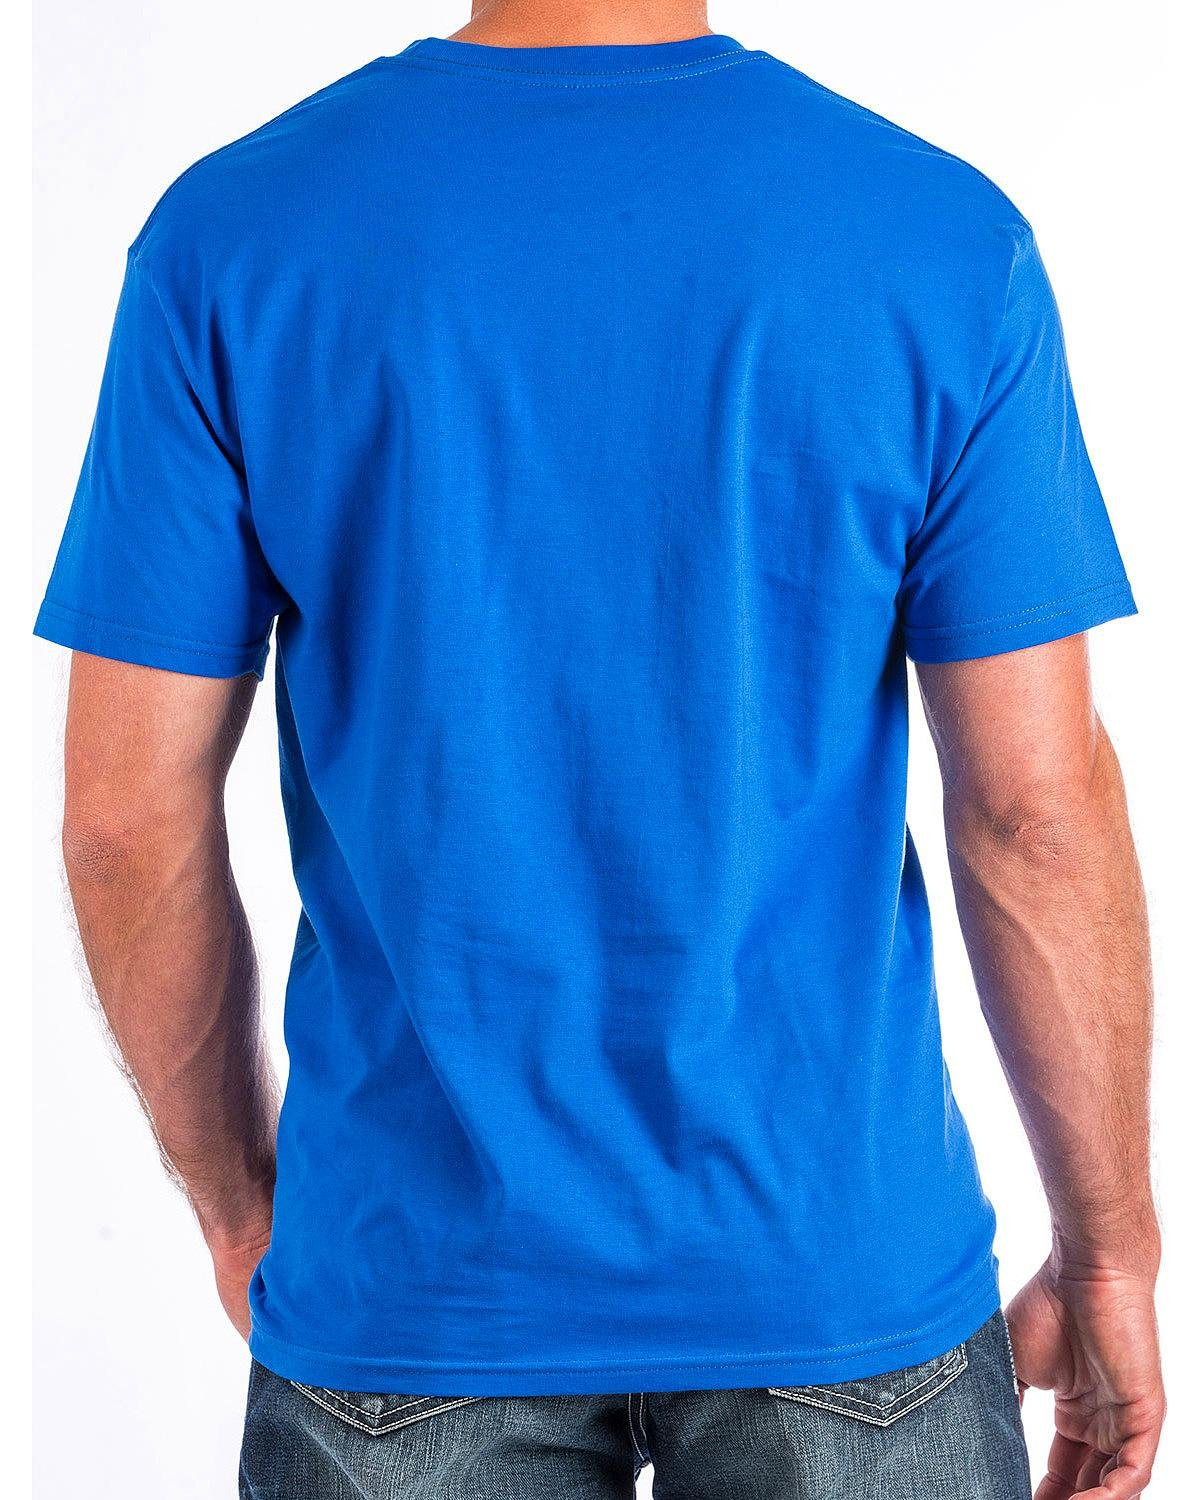 Cinch  Men's Short Sleeve Jersey Tee Blue X-Large by Cinch (Image #3)